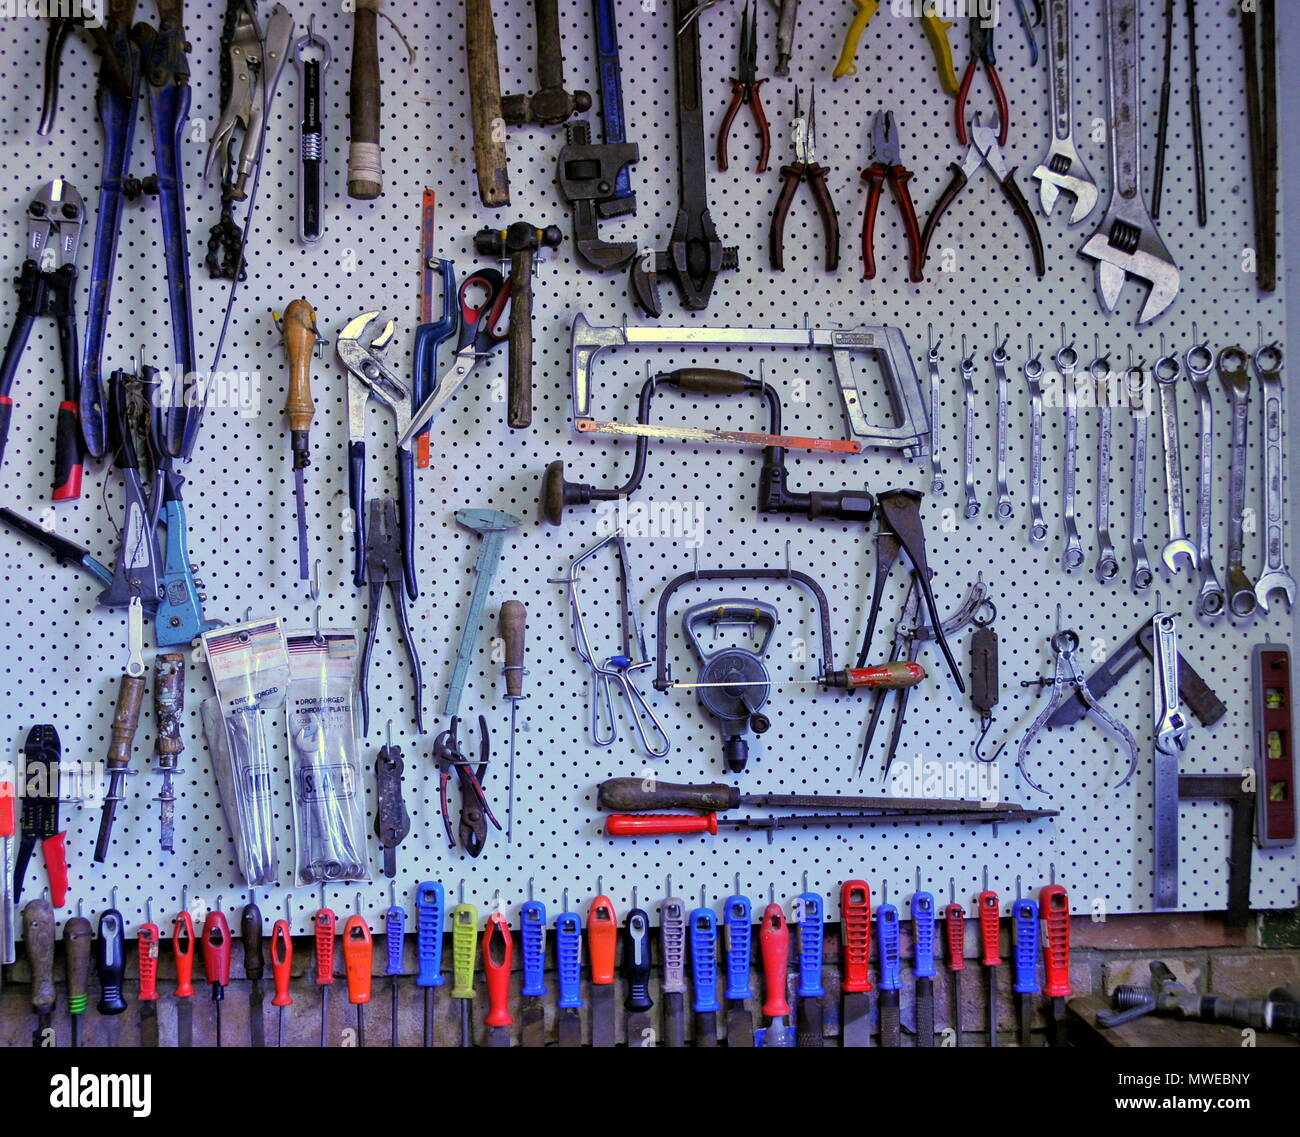 Hand tools organised for easy access on a peg board - Stock Image